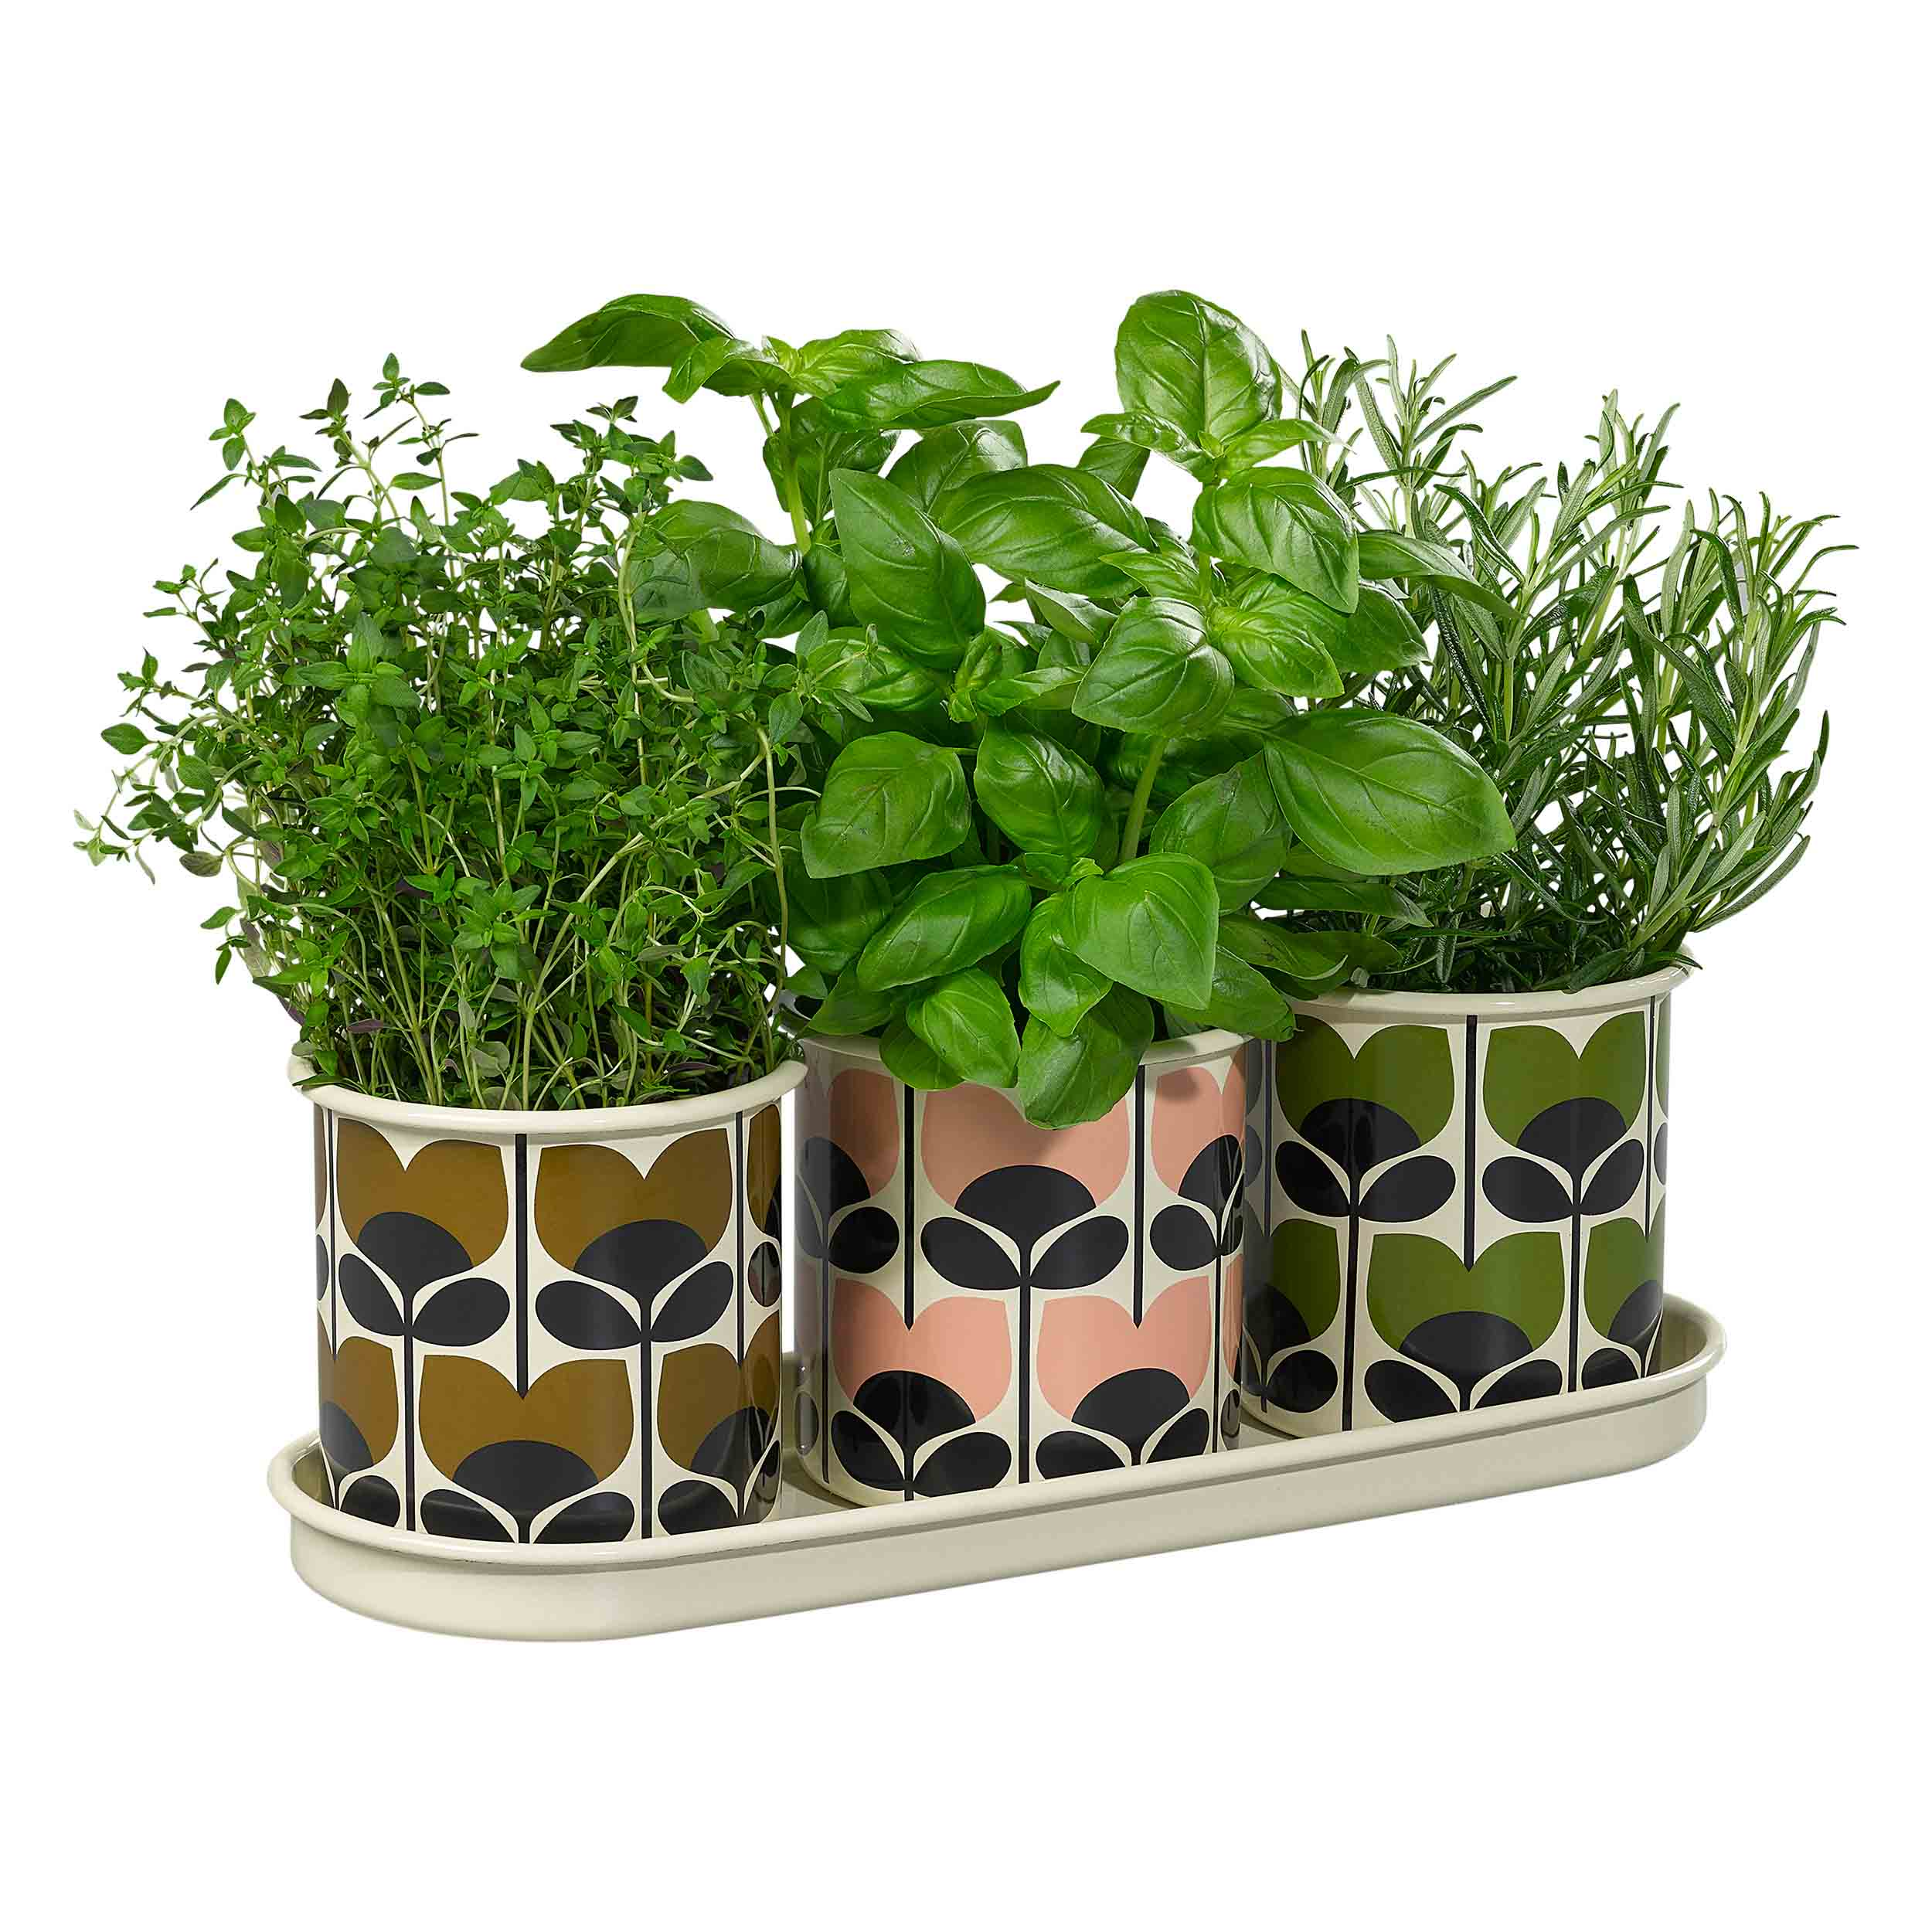 3 Herb Pots with Tray, Climbing Rose